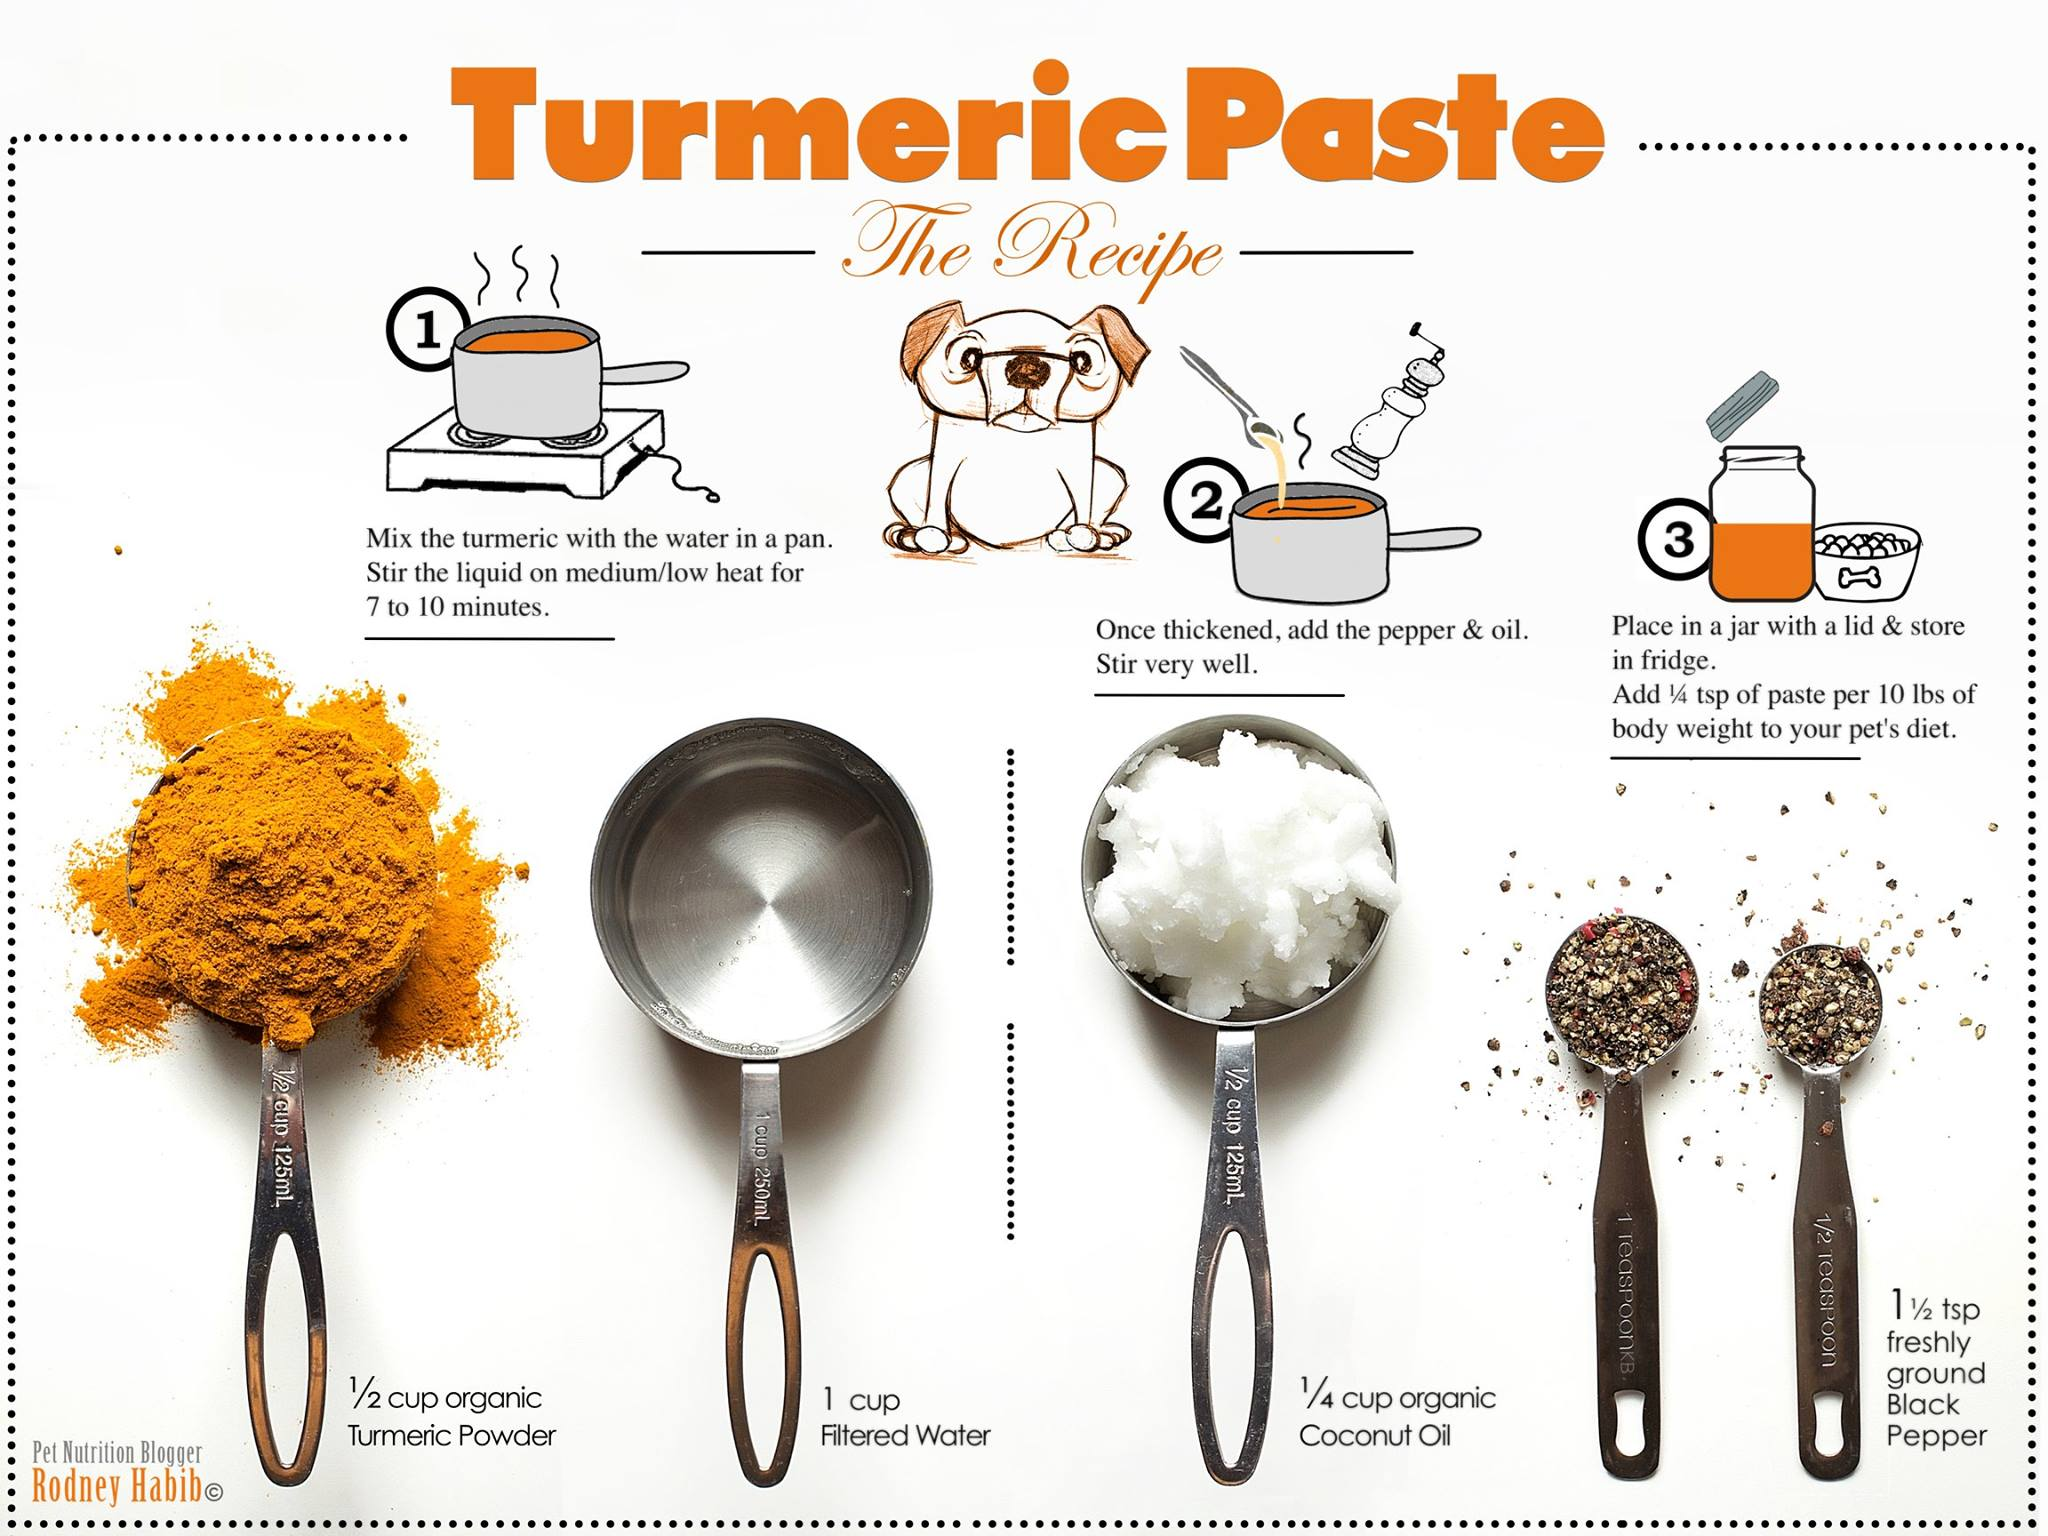 Tumeric Paste